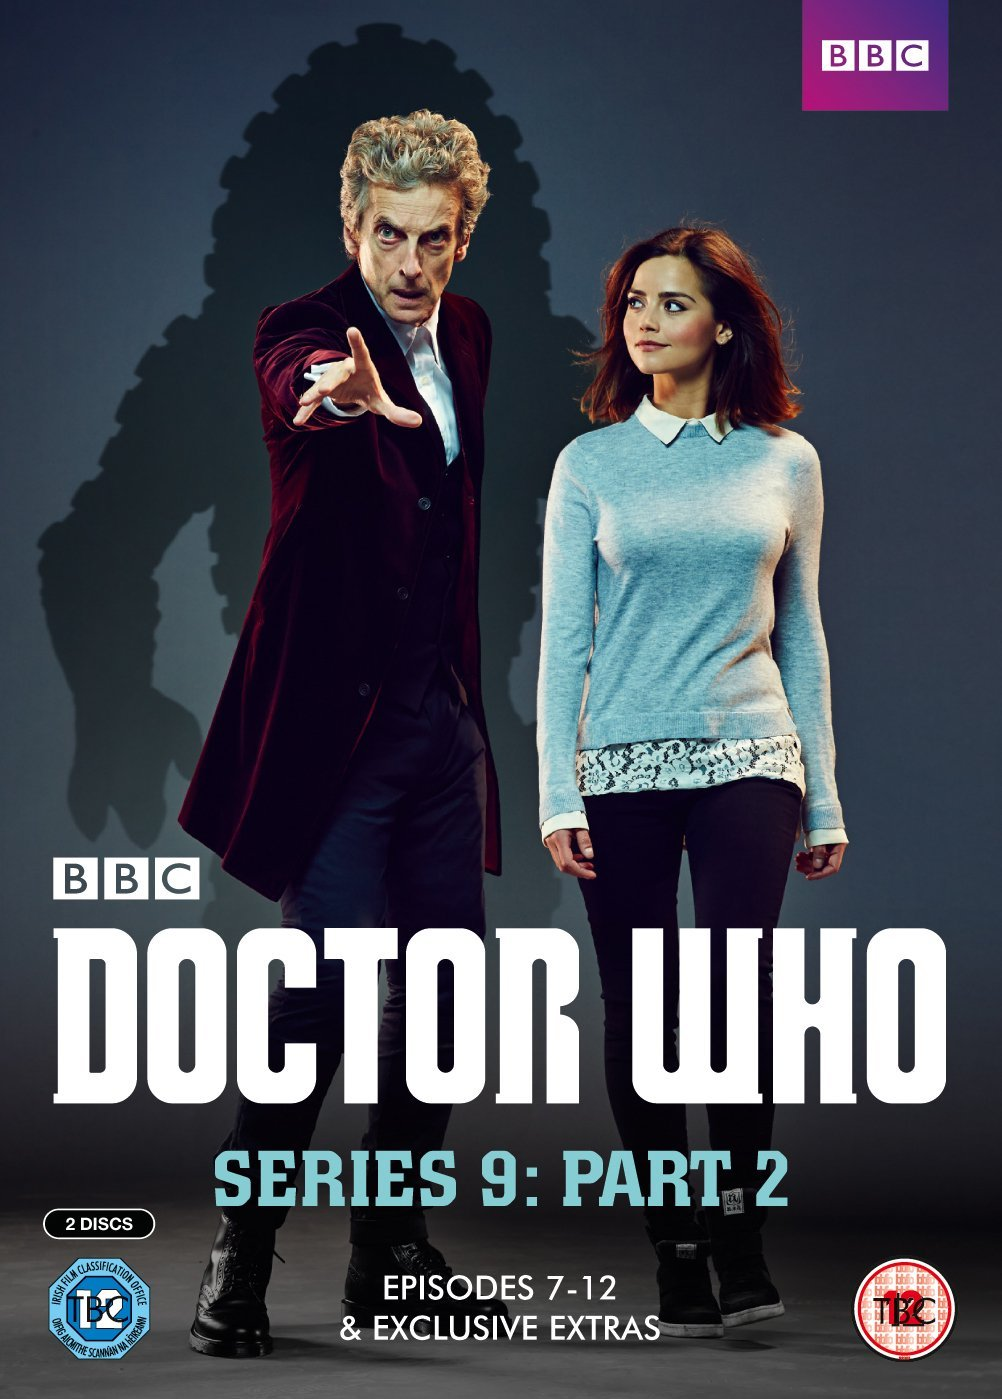 Series 9 Part 2 DVD